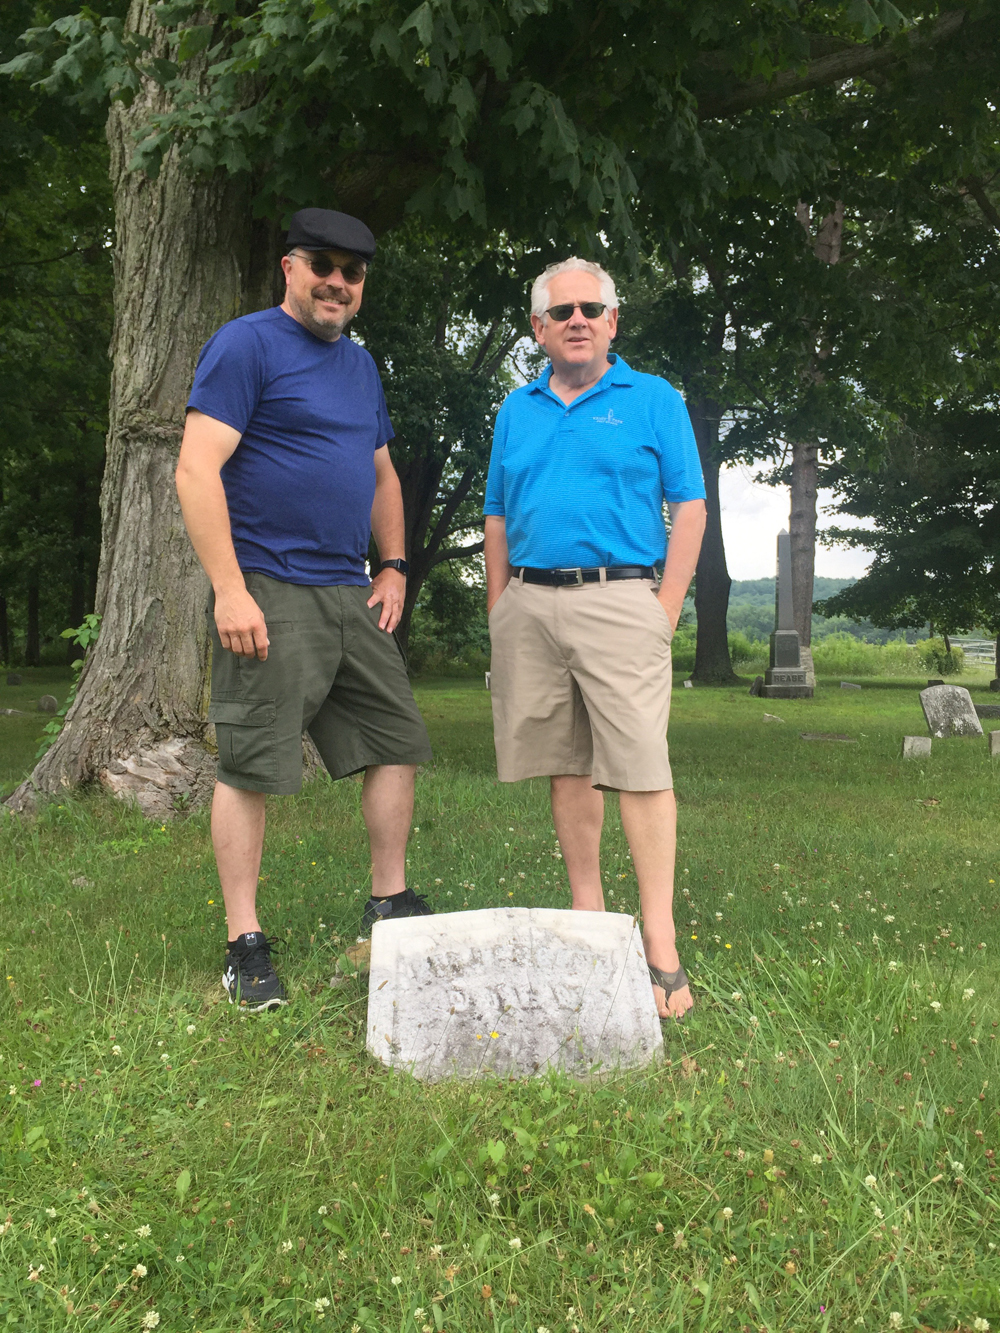 In January/February 2019's Stories to Tell column, Sunny shares the story of cousins Chris and Dave Cooley, who visited the family homestead based on information from an old journal.